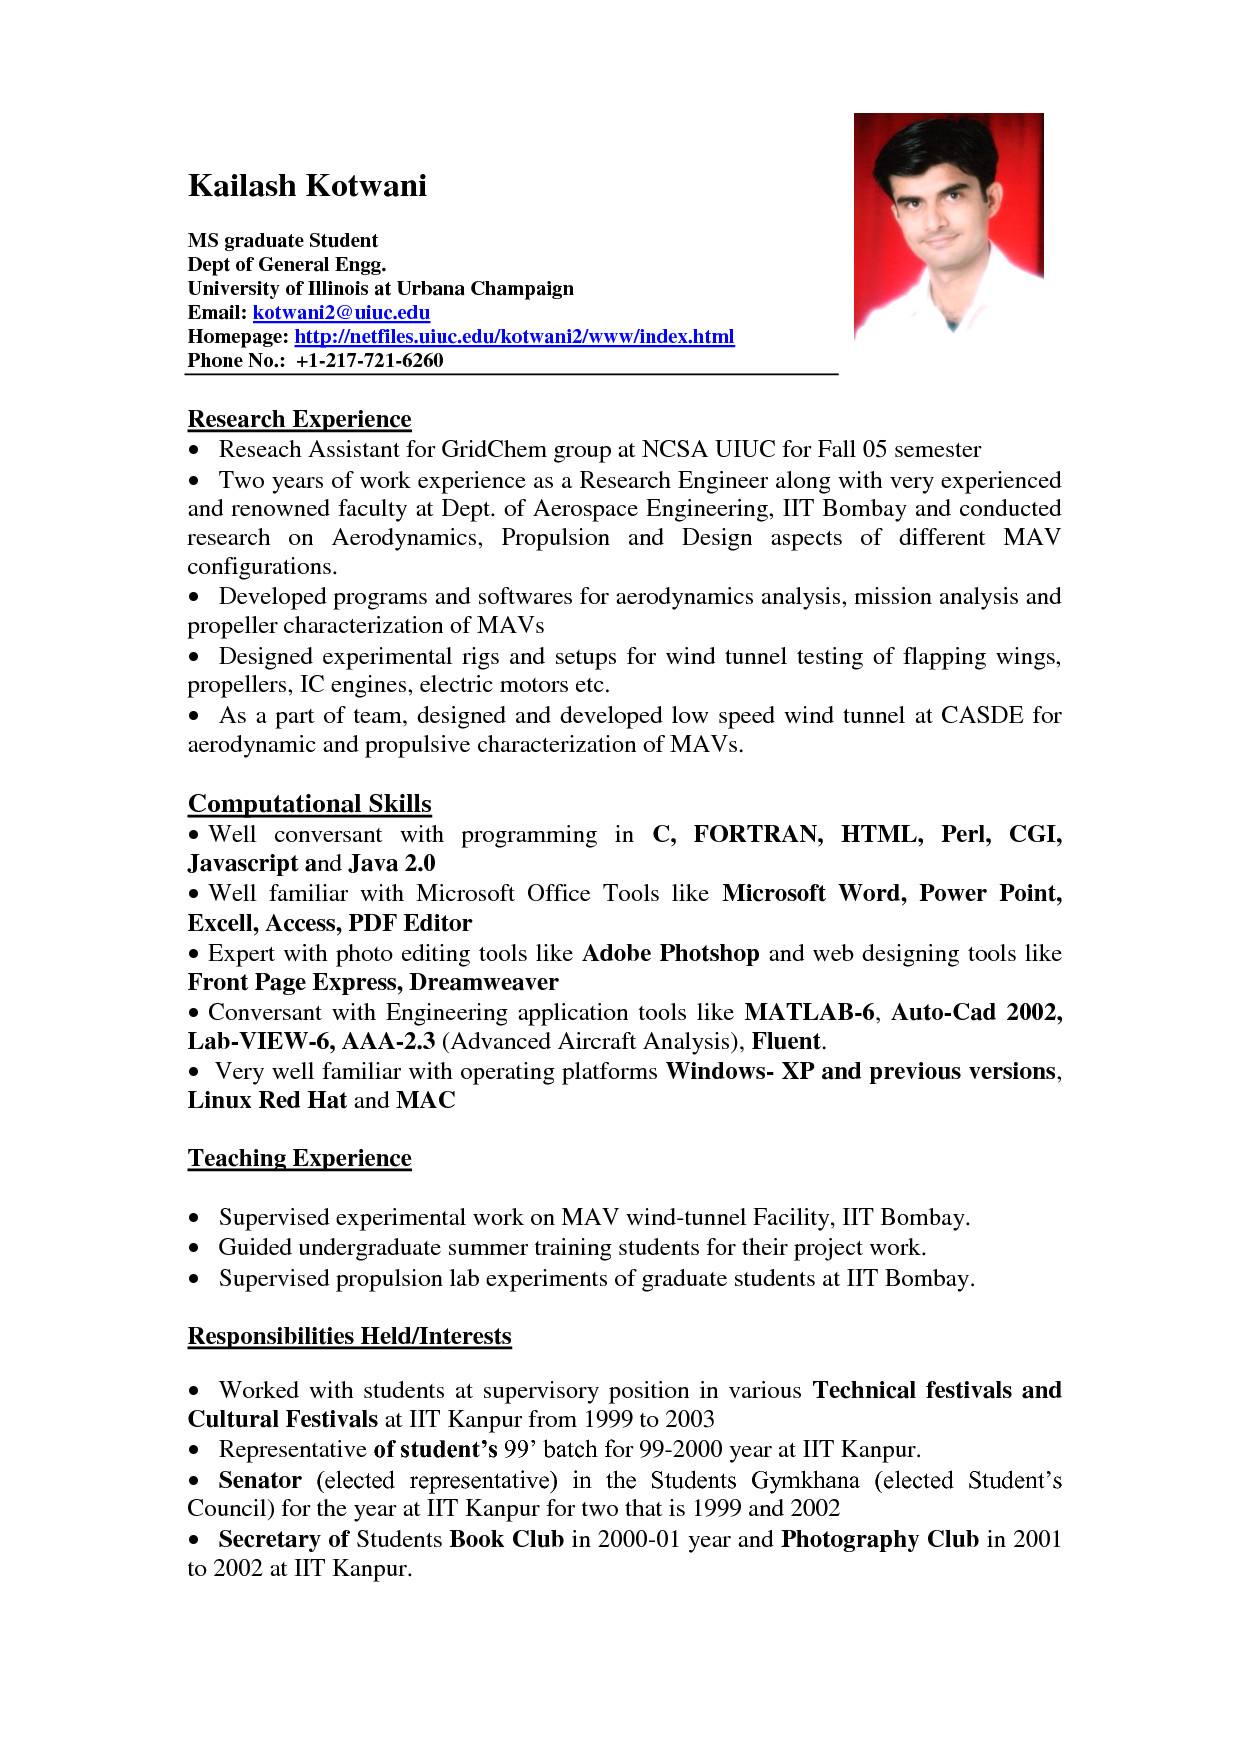 sample resume for it student with no experience